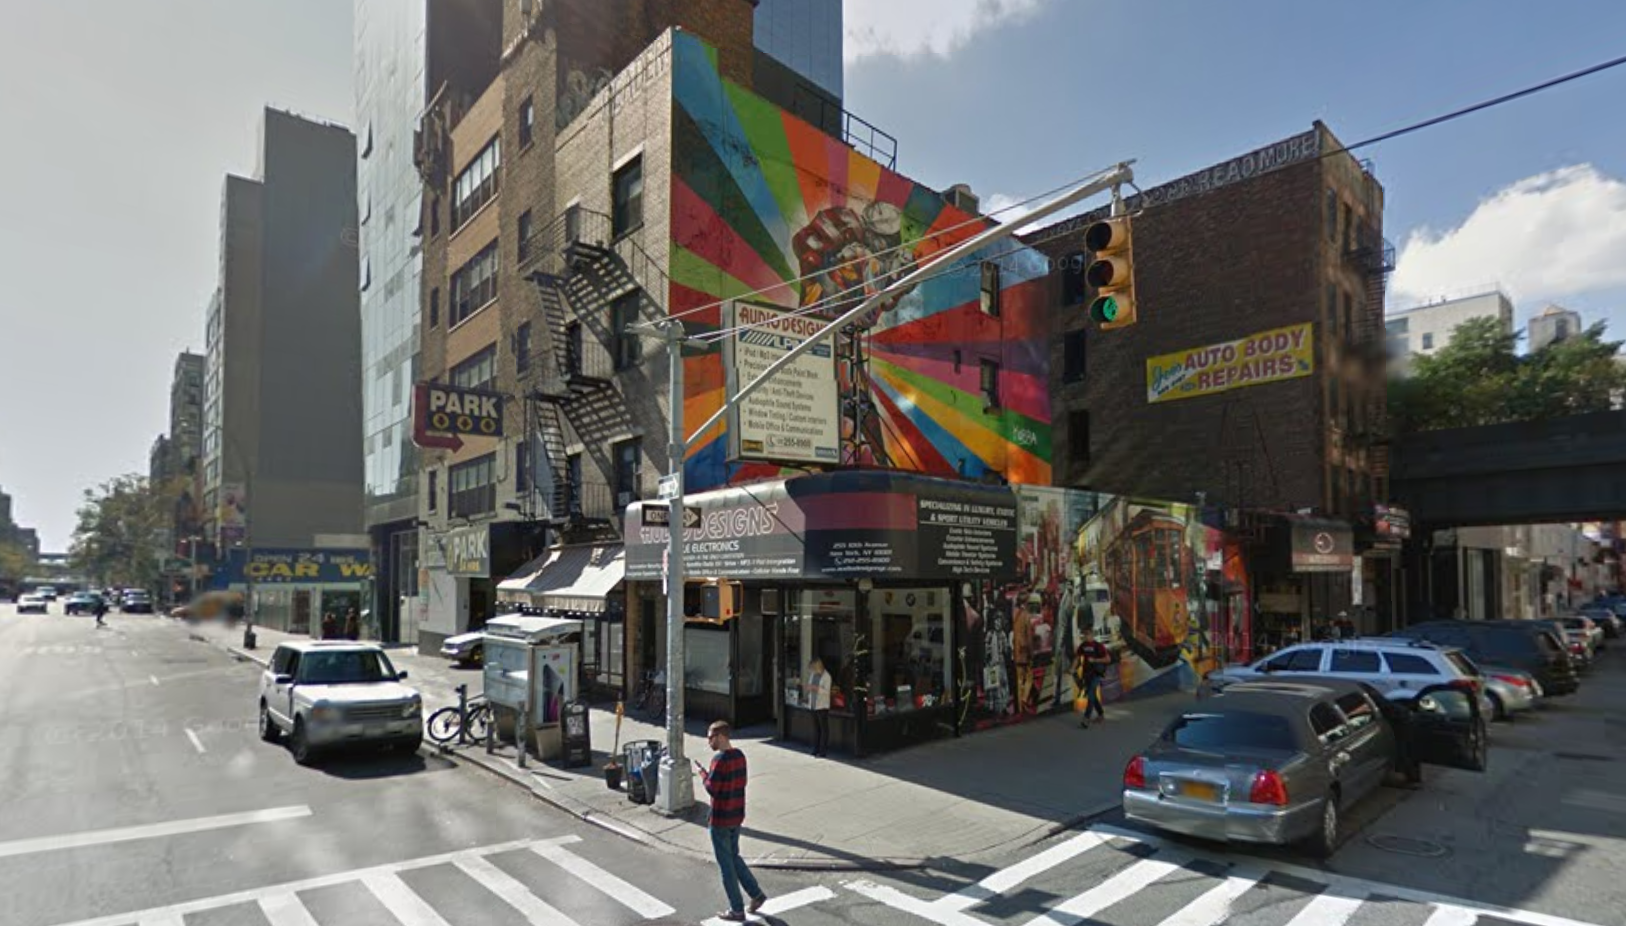 500 West 25th Street and 253 10th Avenue in 2014, image via Google Maps